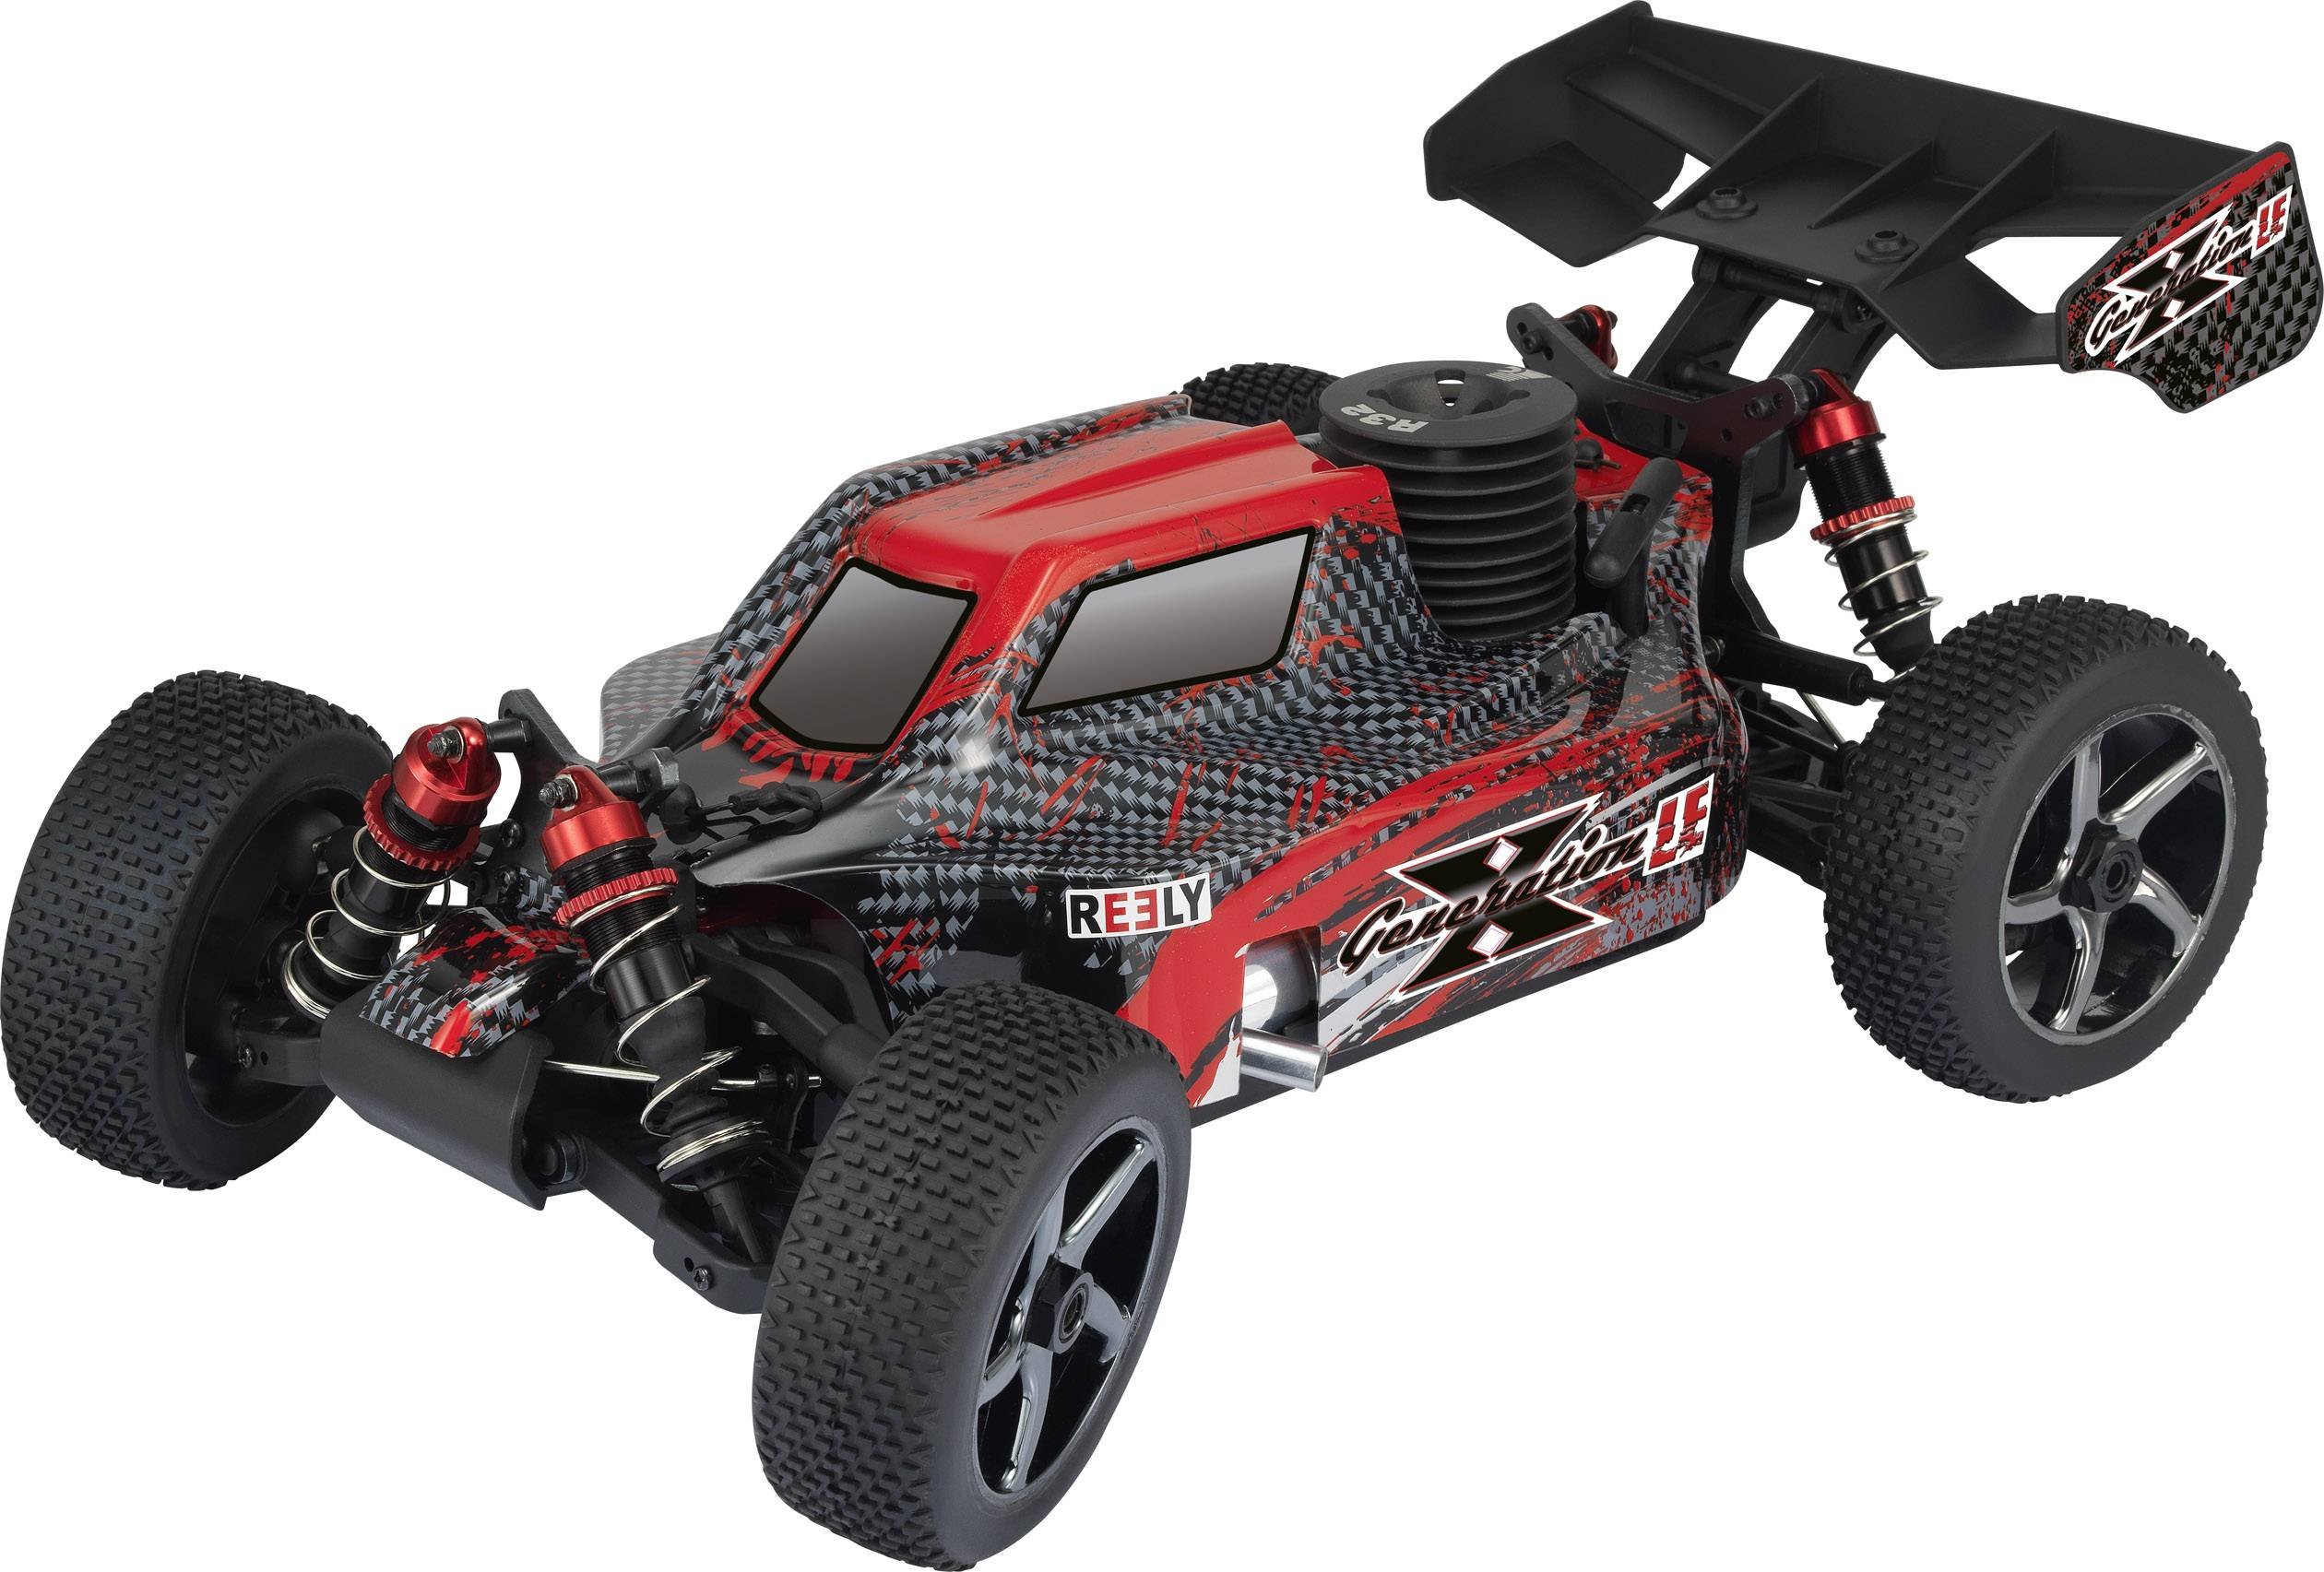 reely generation x limitited edition 1 8 rc model car nitro buggy 4wd rtr 2 4 ghz limited. Black Bedroom Furniture Sets. Home Design Ideas